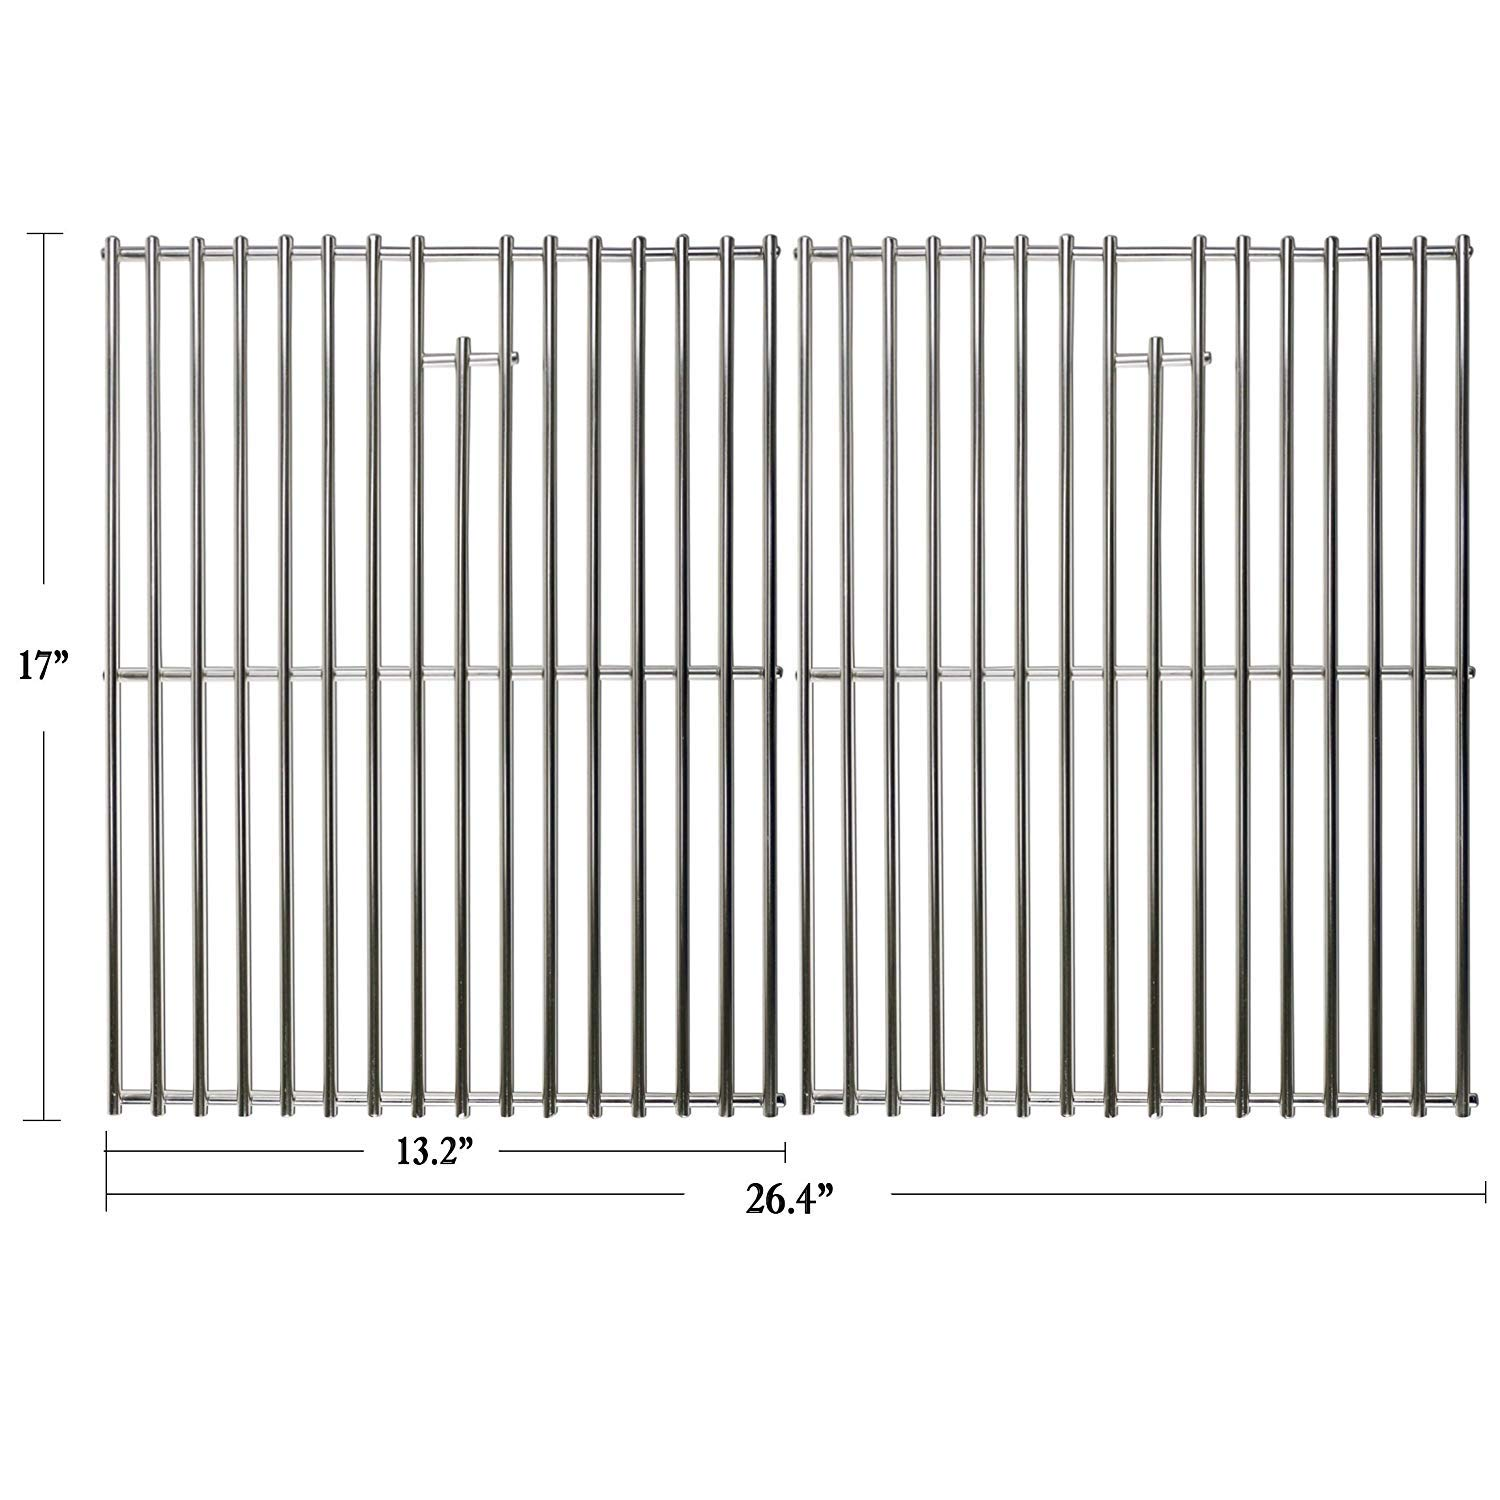 Hisencn 17 inch Grill Cooking grates Replacement Parts for Home Depot Nexgrill 720-0830H, 720-0830D, Kenmore, Uniflame Gas Grils, 17'' Stainless Steel Cooking grids by Hisencn